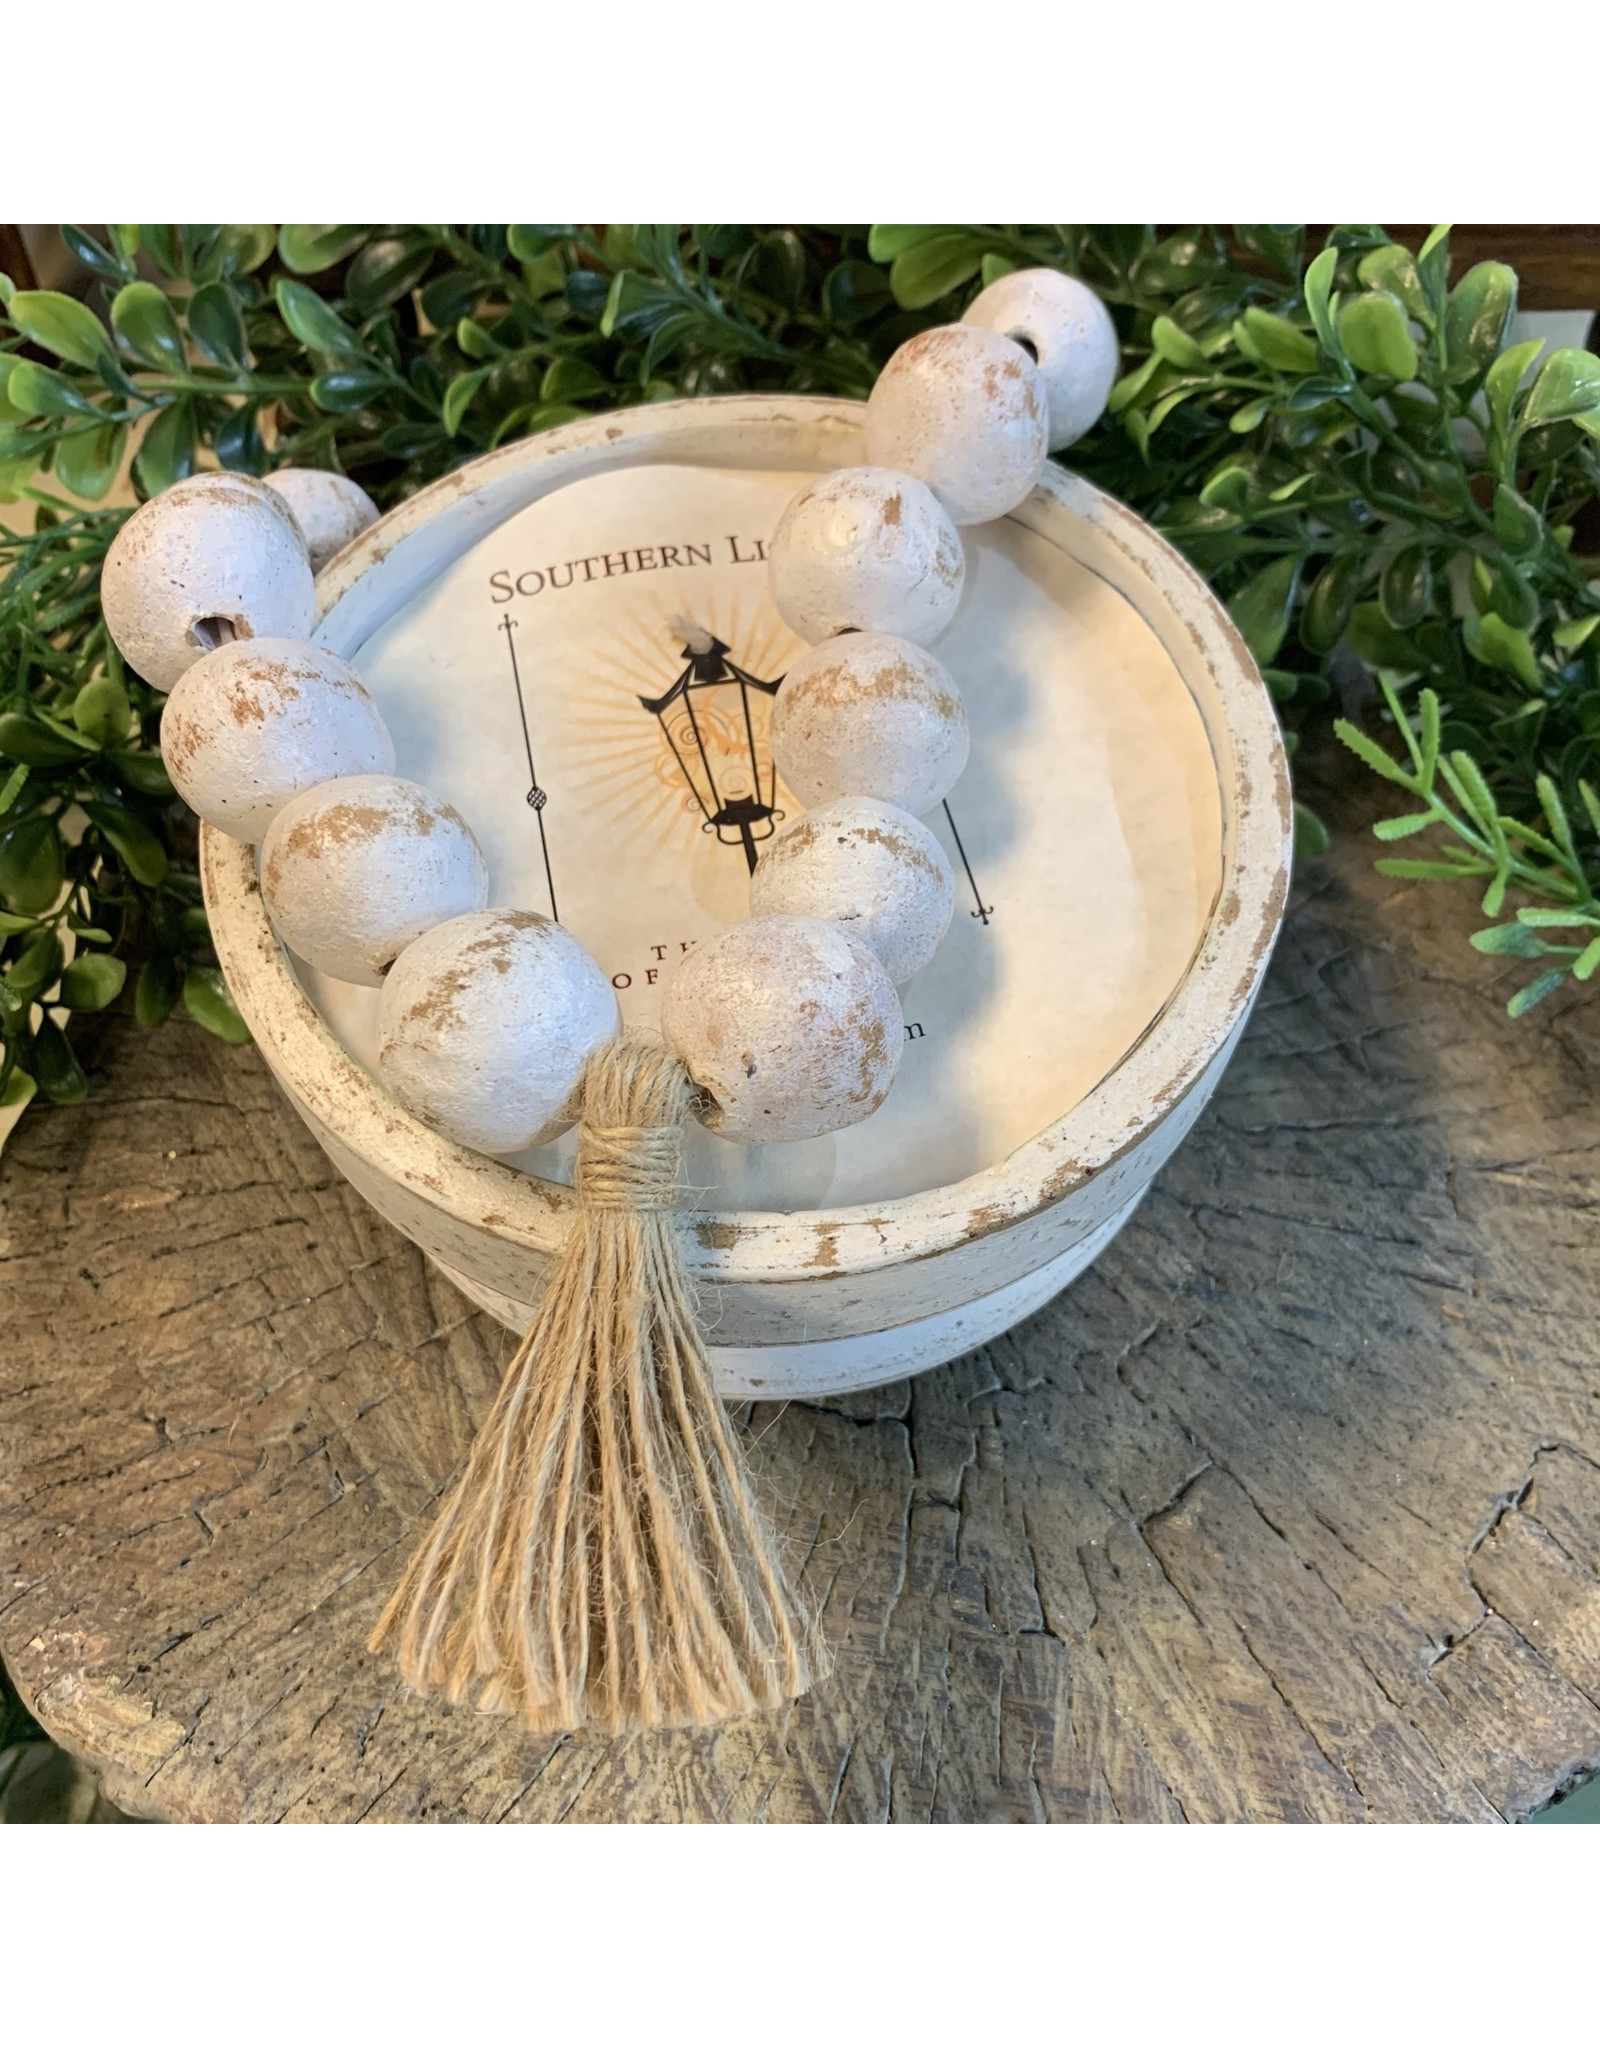 Southern Lights Round Rustic Bead Bowl-South Charm16-18oz